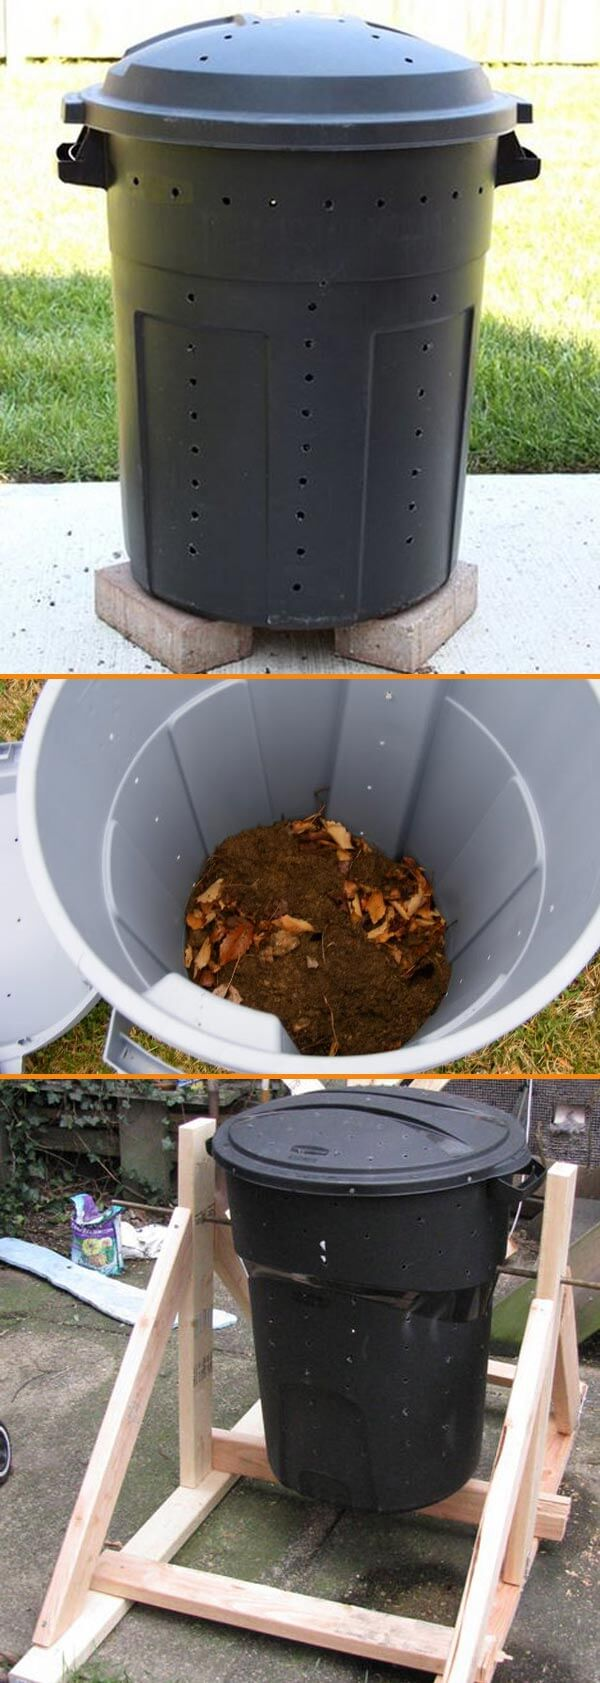 DIY Compost Bin from Trash can under $20 | Easy Compost Bins You Can DIY On Very Low Budget - FarmFoodFamily.com